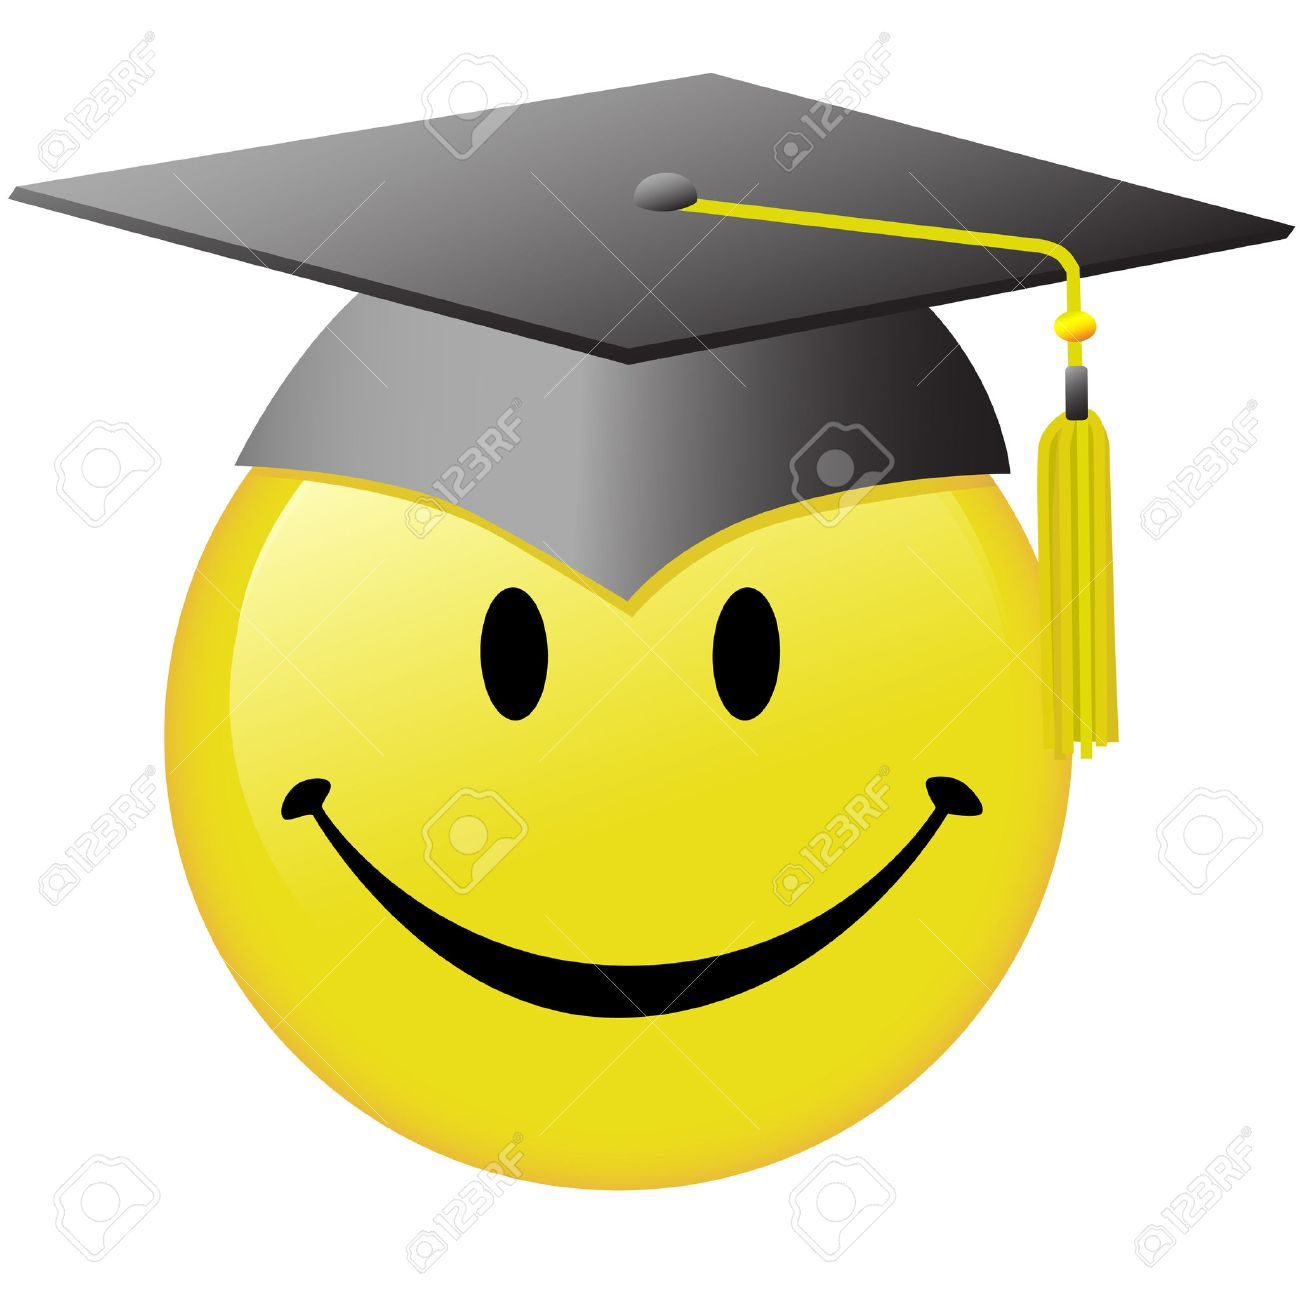 A happy smiley face graduate in a graduation day mortar board cap. Stock Vector - 4228044